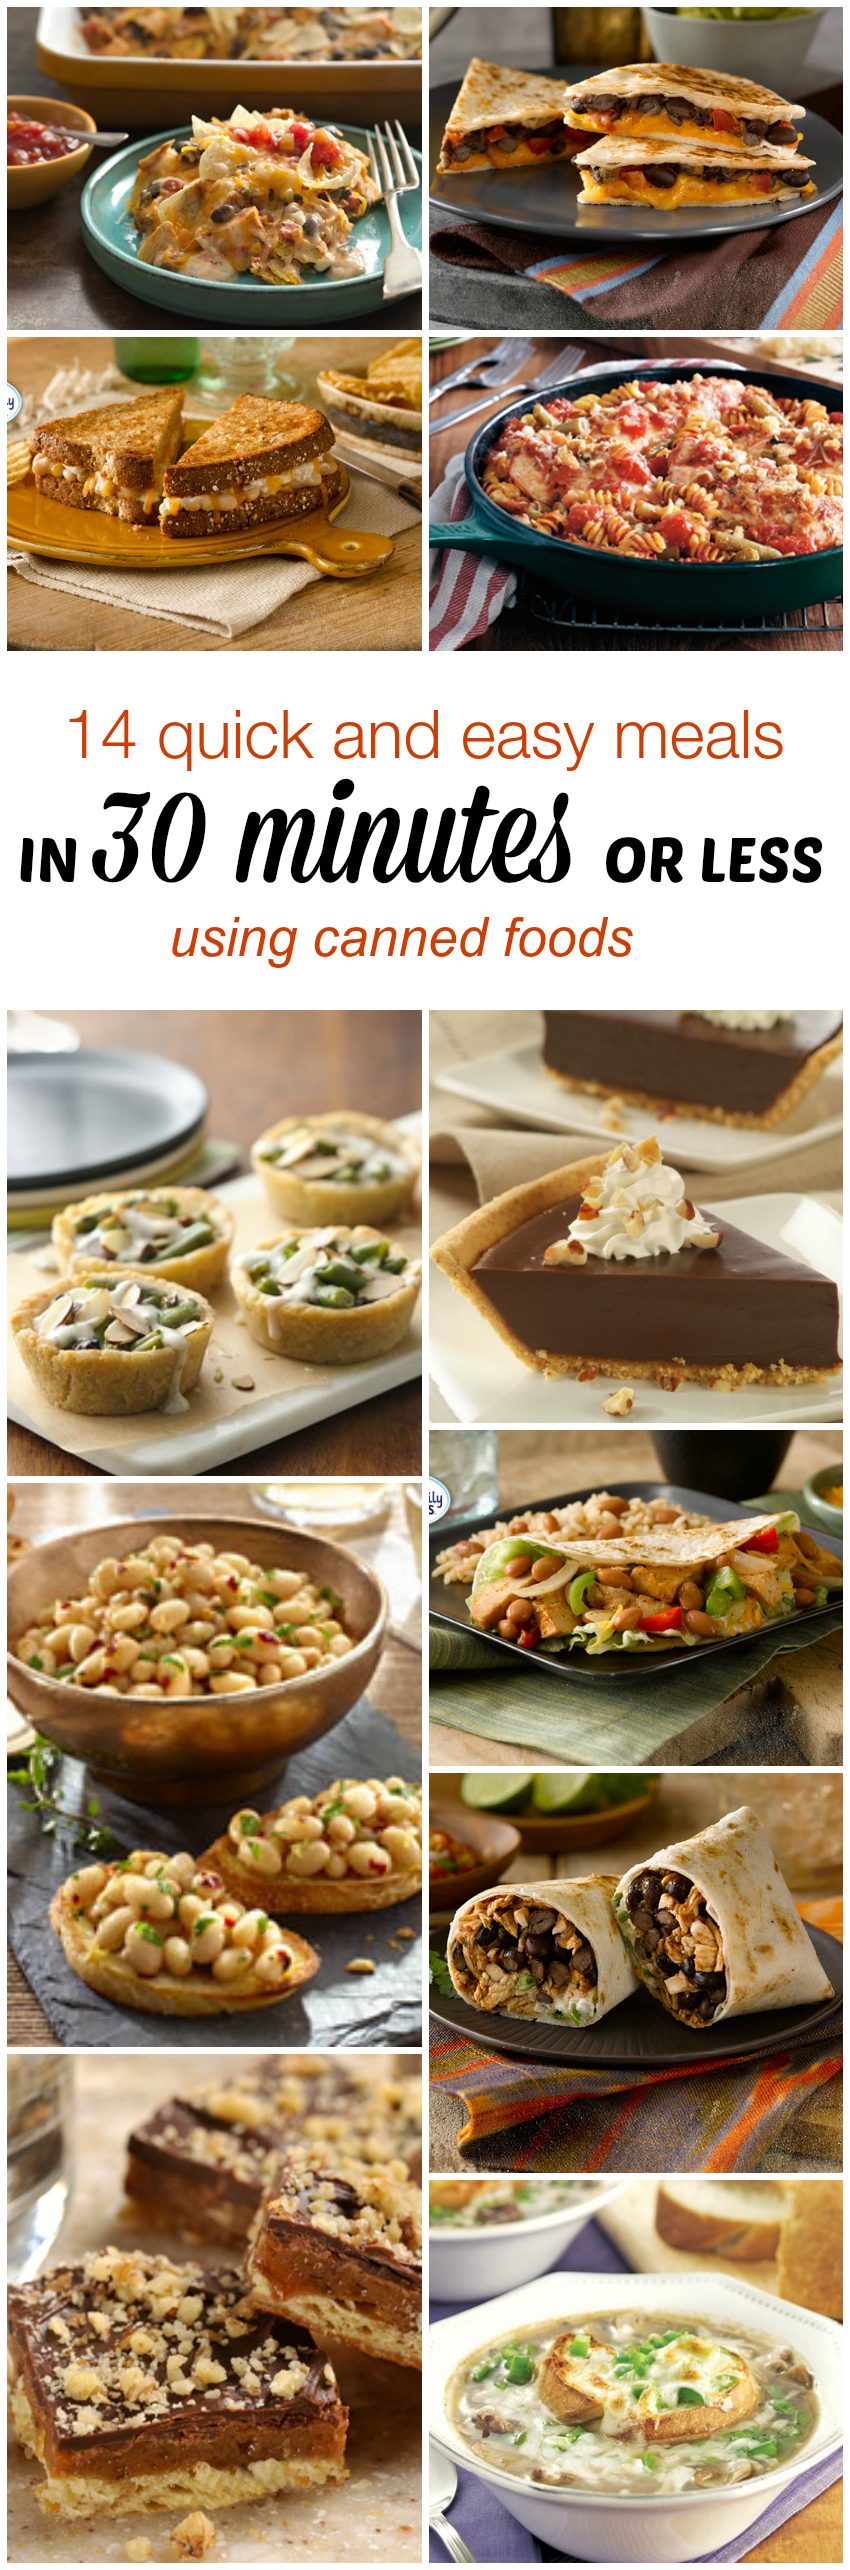 14 Quick and Easy Recipes (in 30 minutes or less) Using Canned Foods #Cansgetyoucooking